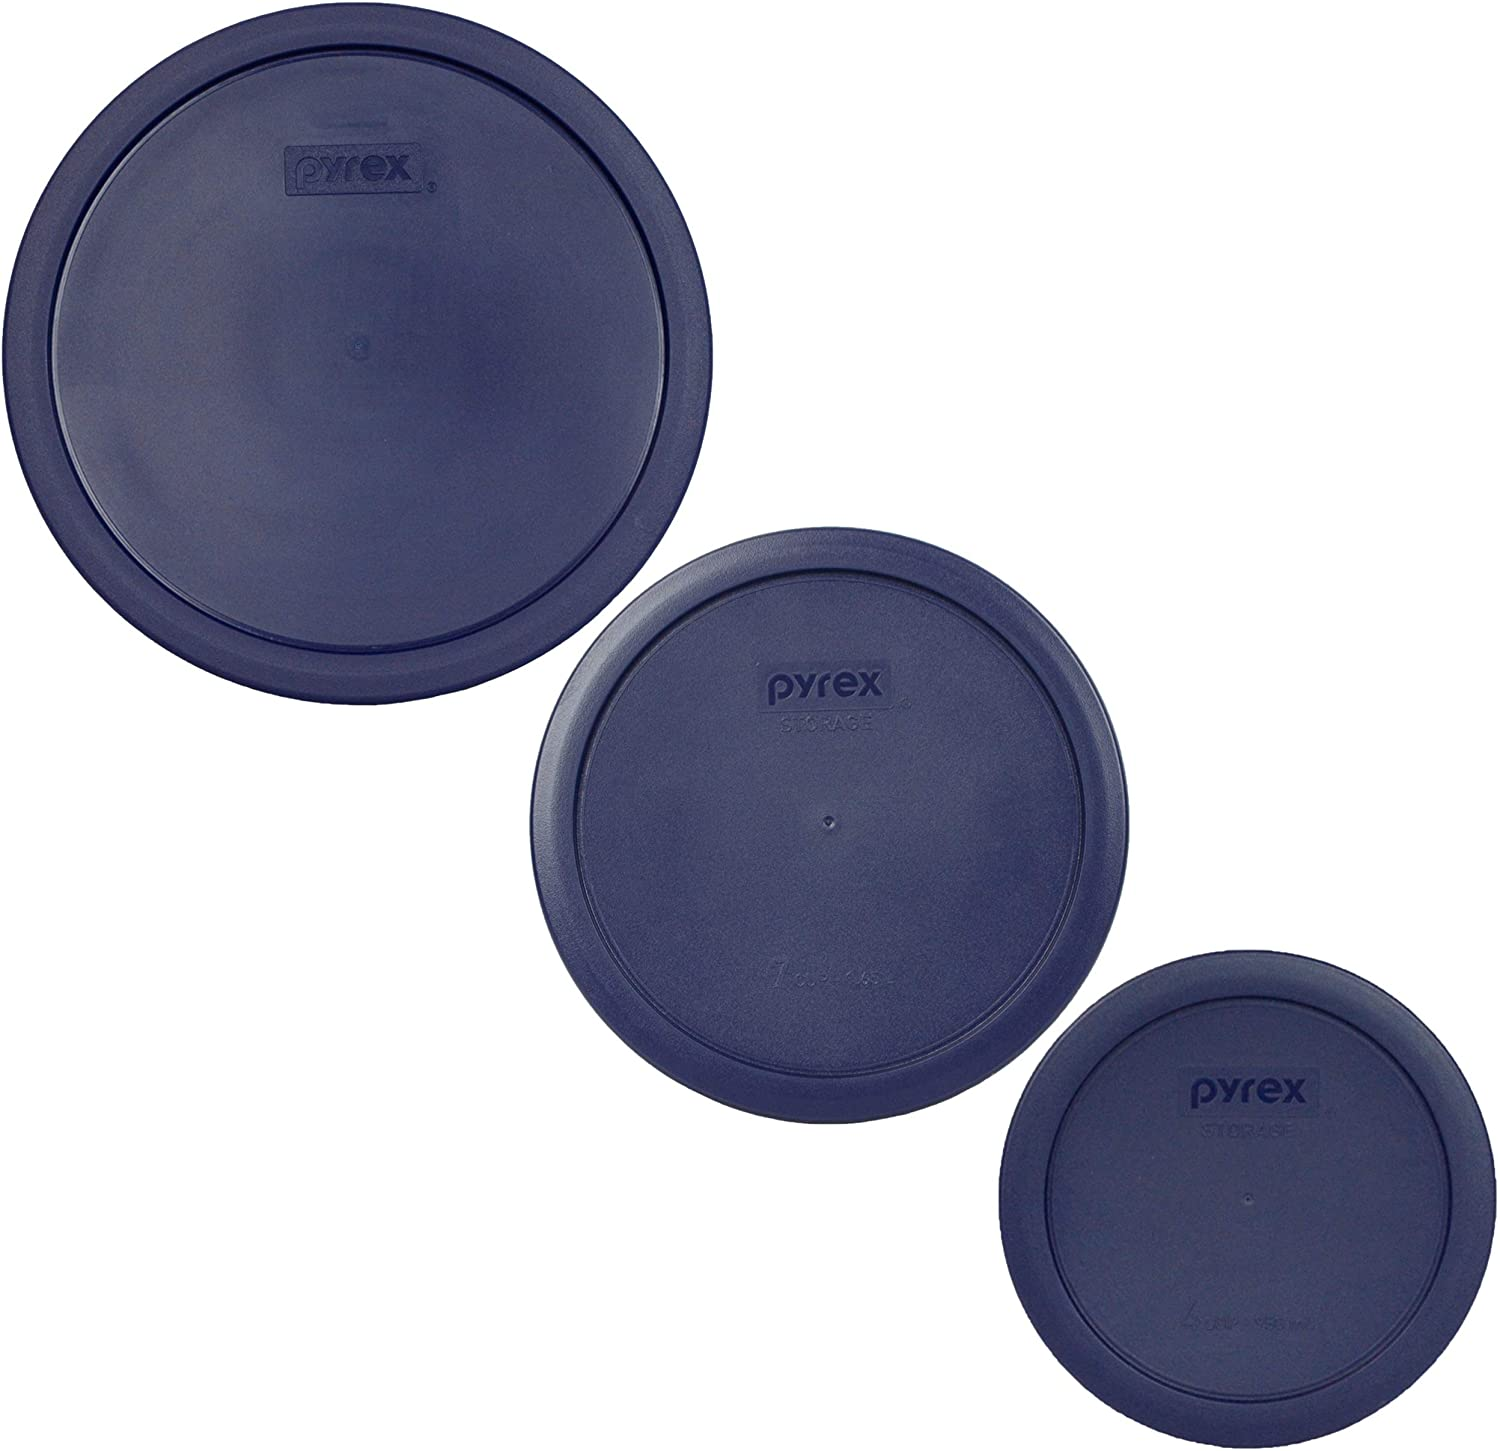 Pyrex (1) 7403-PC 10 Cup (1) 7402-PC 6/7 Cup (1) 7201-PC 4 Cup Blue Round Replacement Food Storage Lids